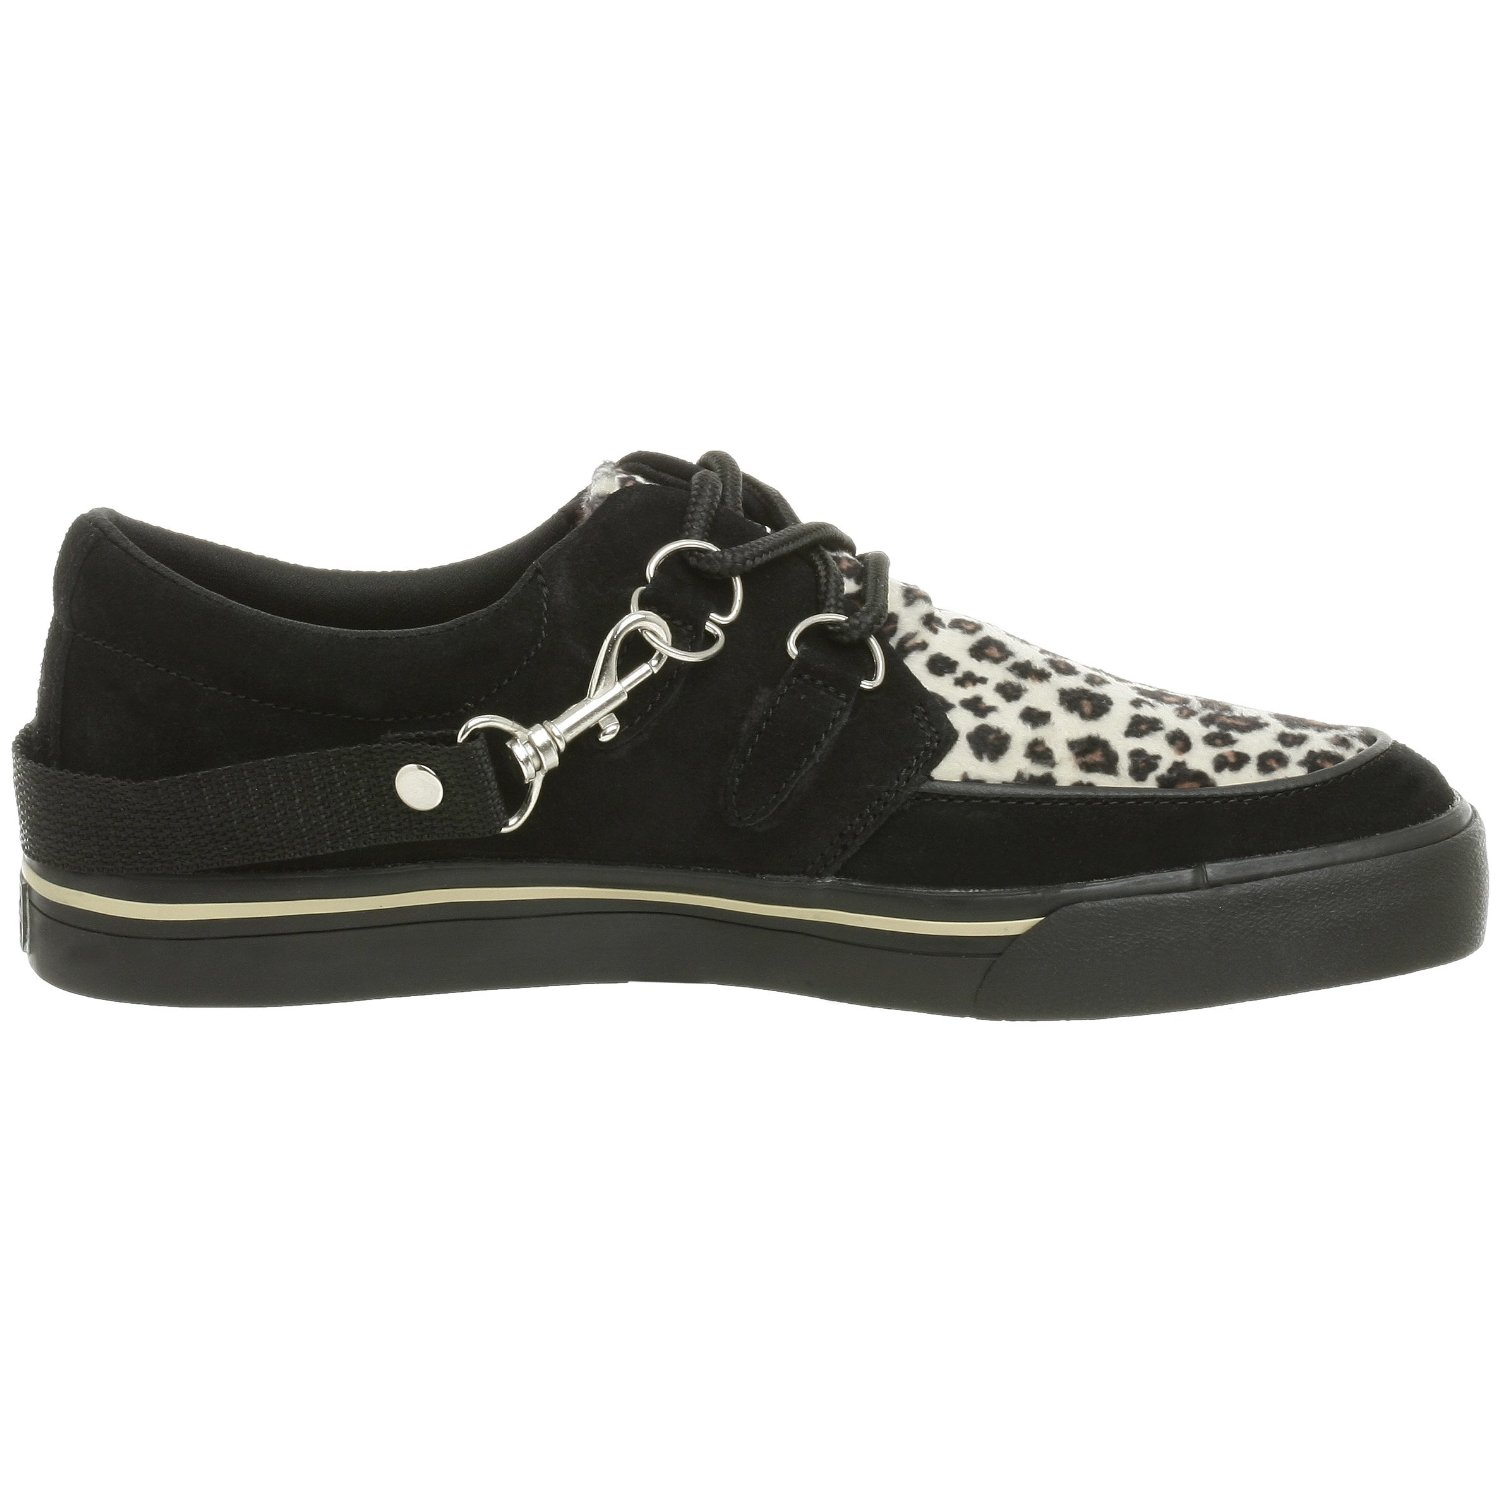 tuk a6142 leopard suede new mens womens unisex creepers